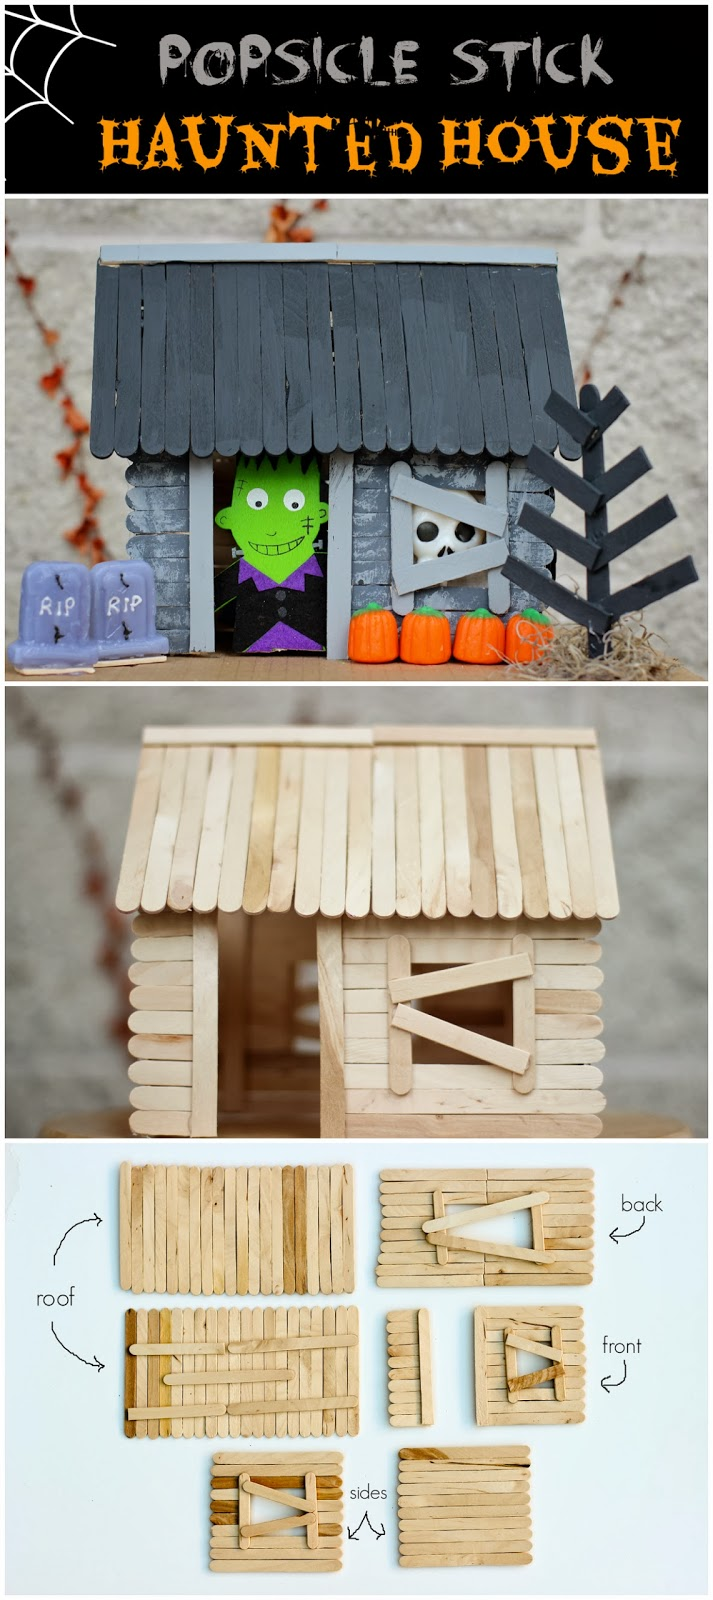 DIY Popsicle Stick Haunted House for Halloween Decor